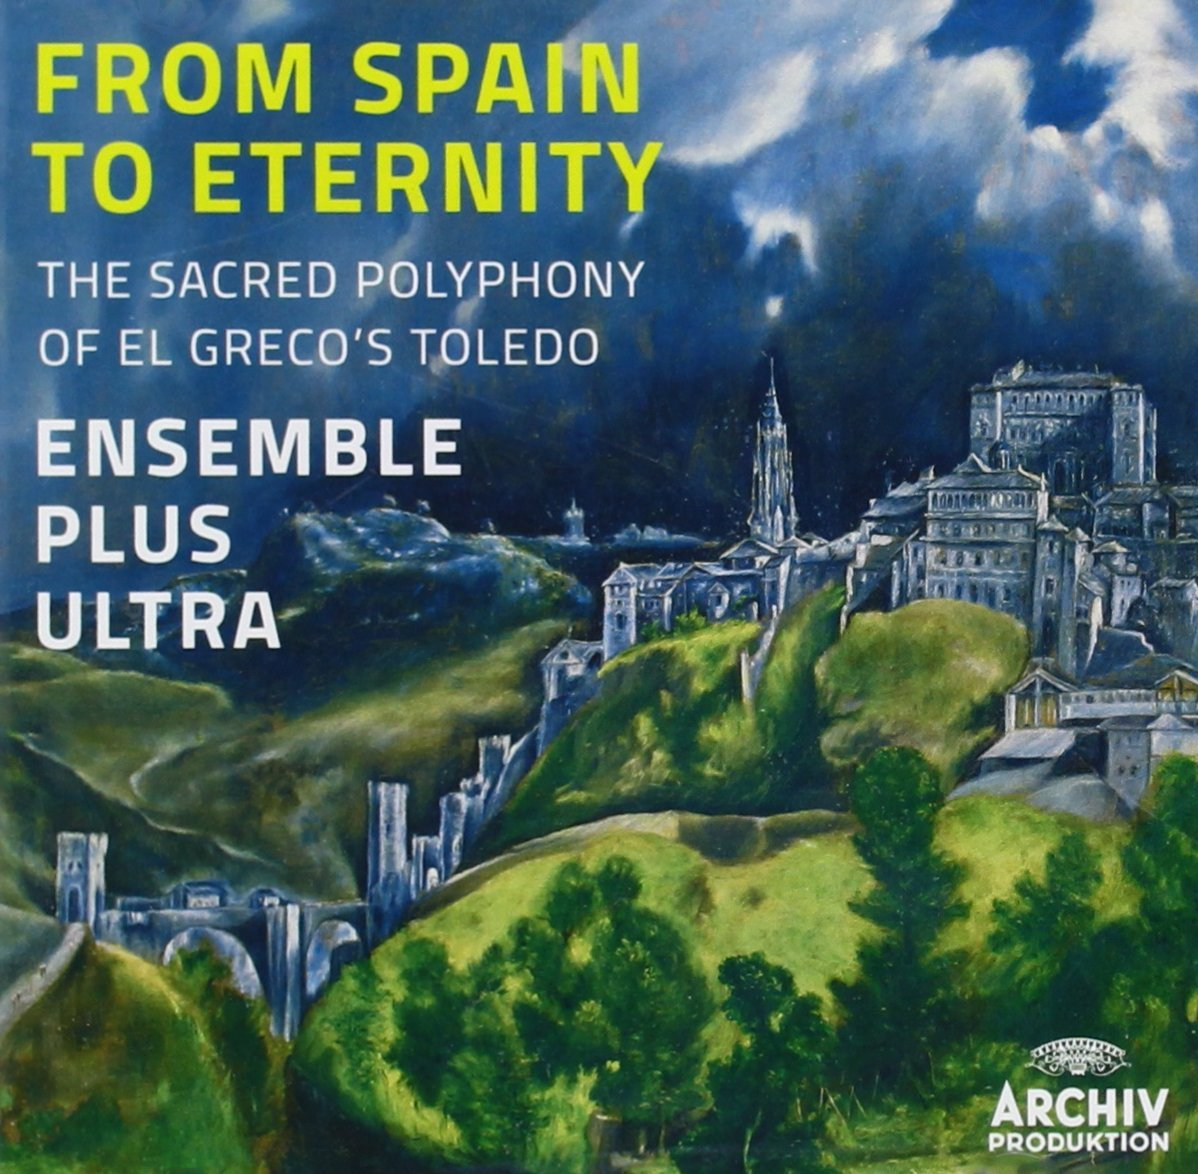 Ensemble Plus Ultra veroeffentlicht Album From Spain to Eternity El Grecos Toledo